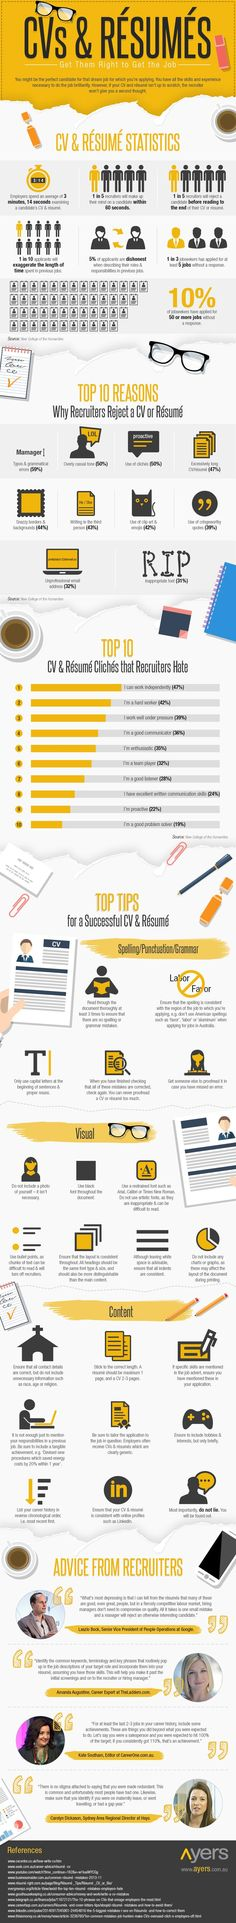 infographic CVs & Resumes: Get Them Right to Get the Job . Image Description CVs & Resumes: Get Them Right to Get the Job Resume Advice, Resume Writing Tips, Job Resume, Career Advice, Sample Resume, Career Help, Resume Format, Future Career, Cv Web